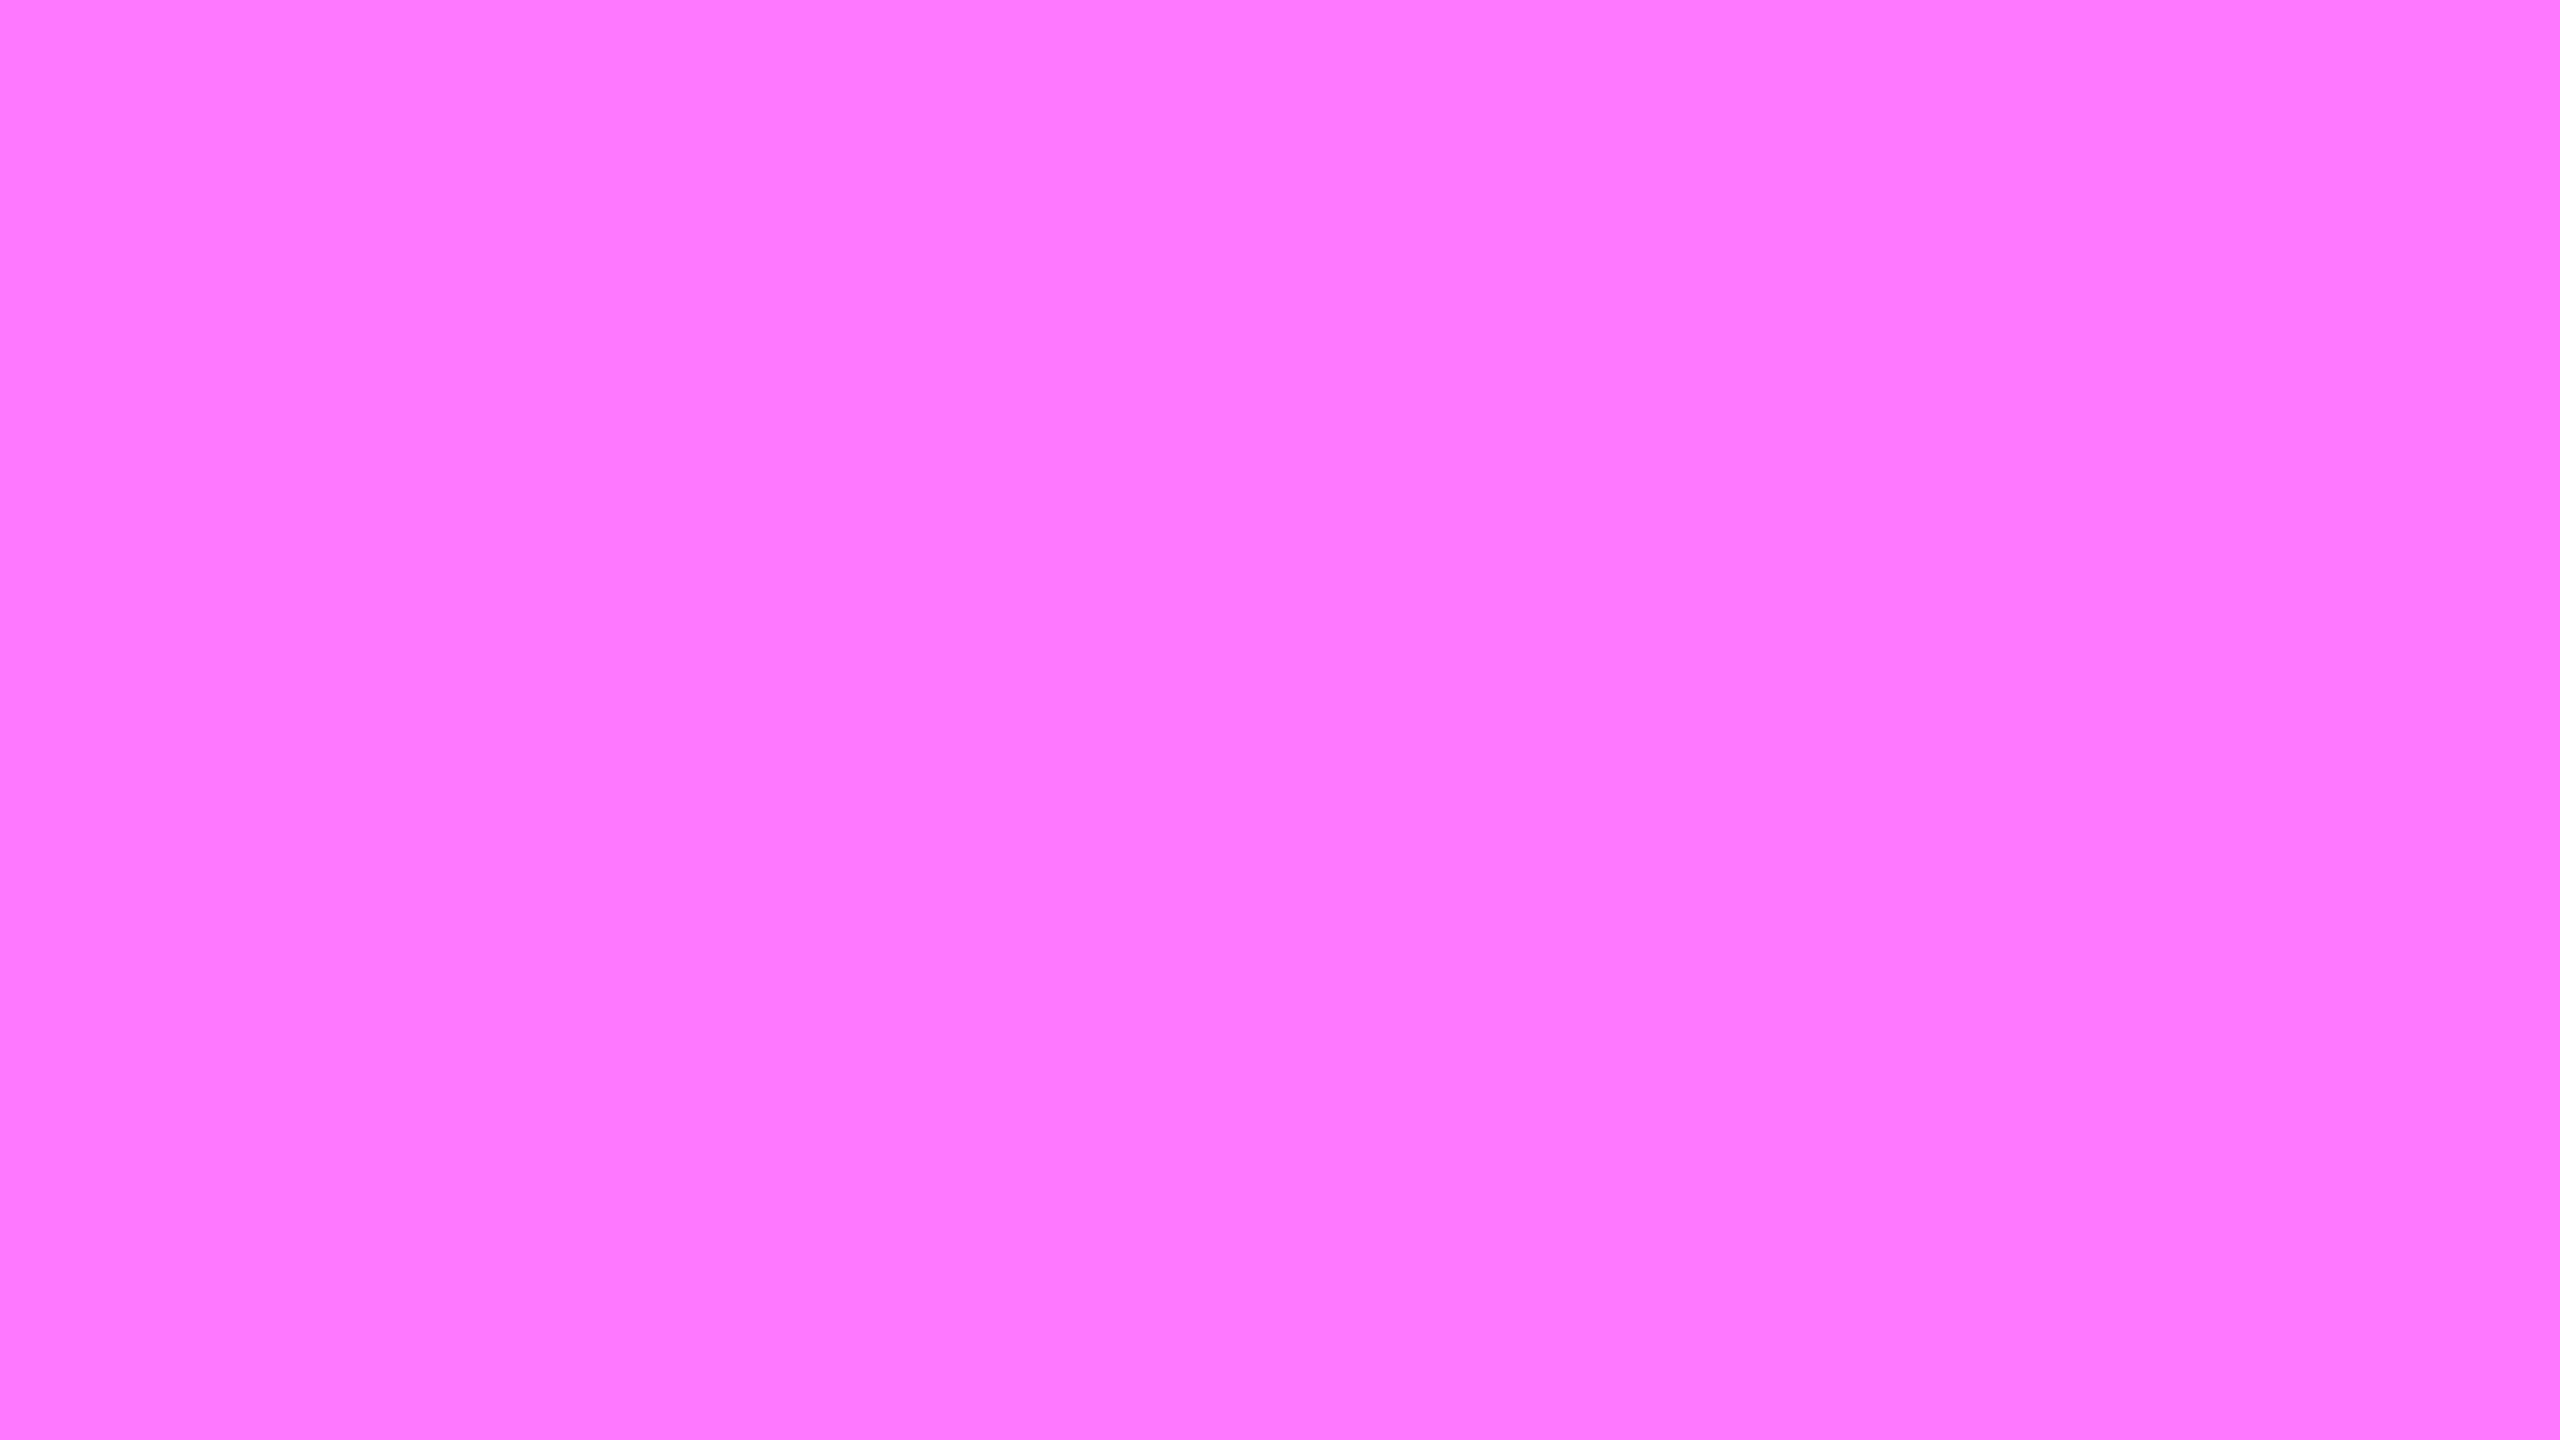 2560x1440 Fuchsia Pink Solid Color Background